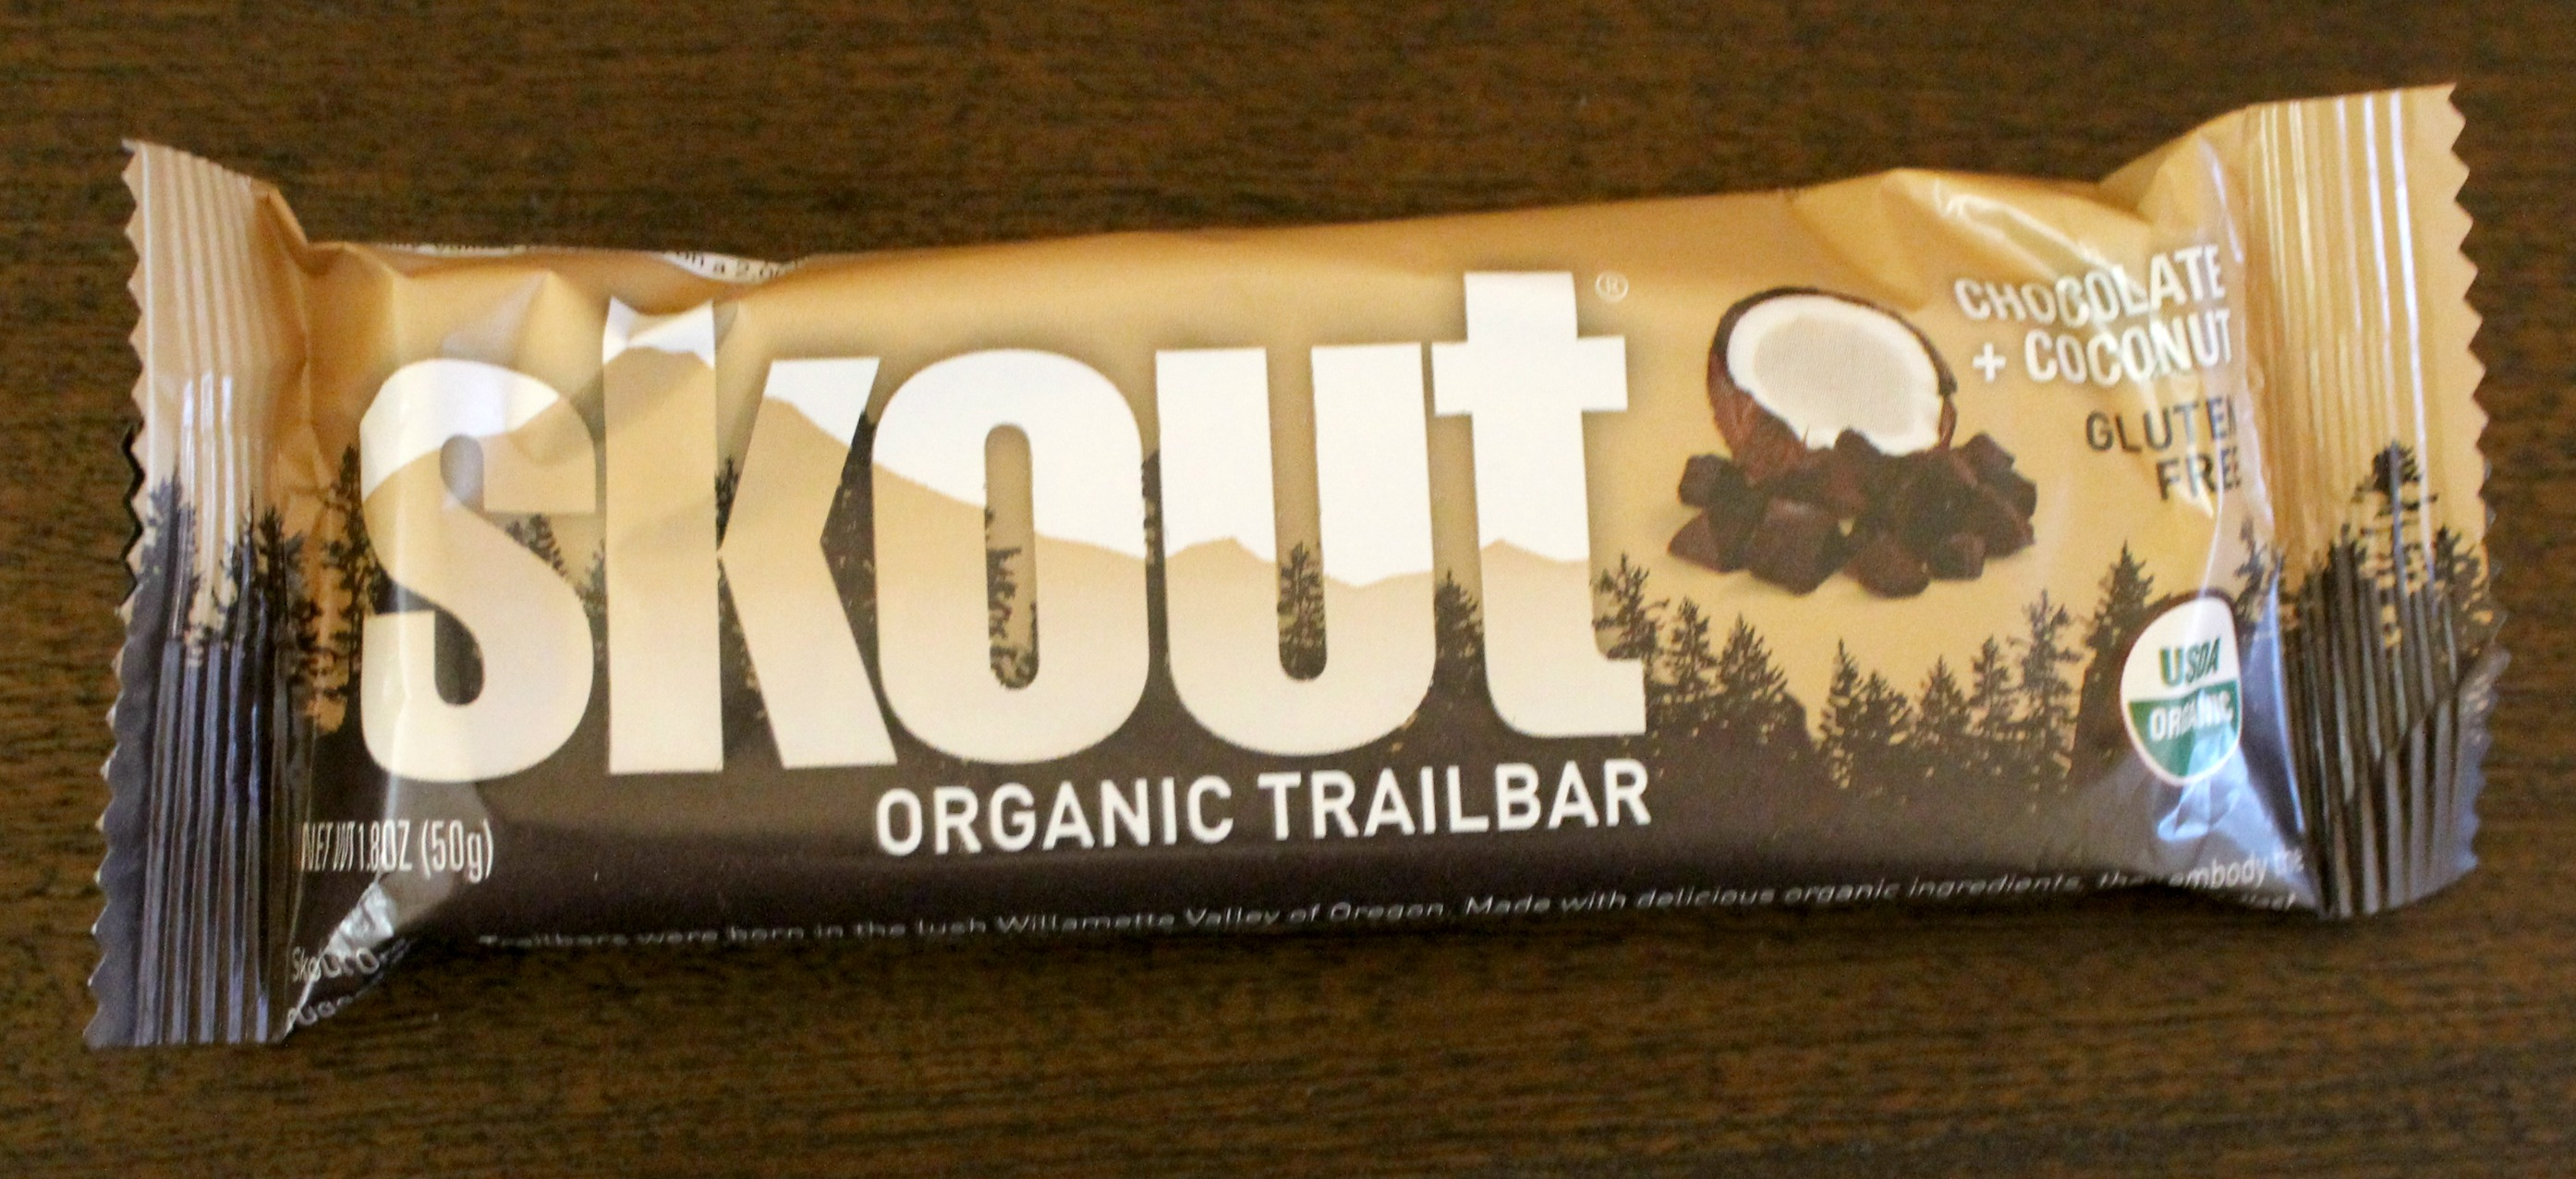 Skout Trailbar Chocolate Coconut